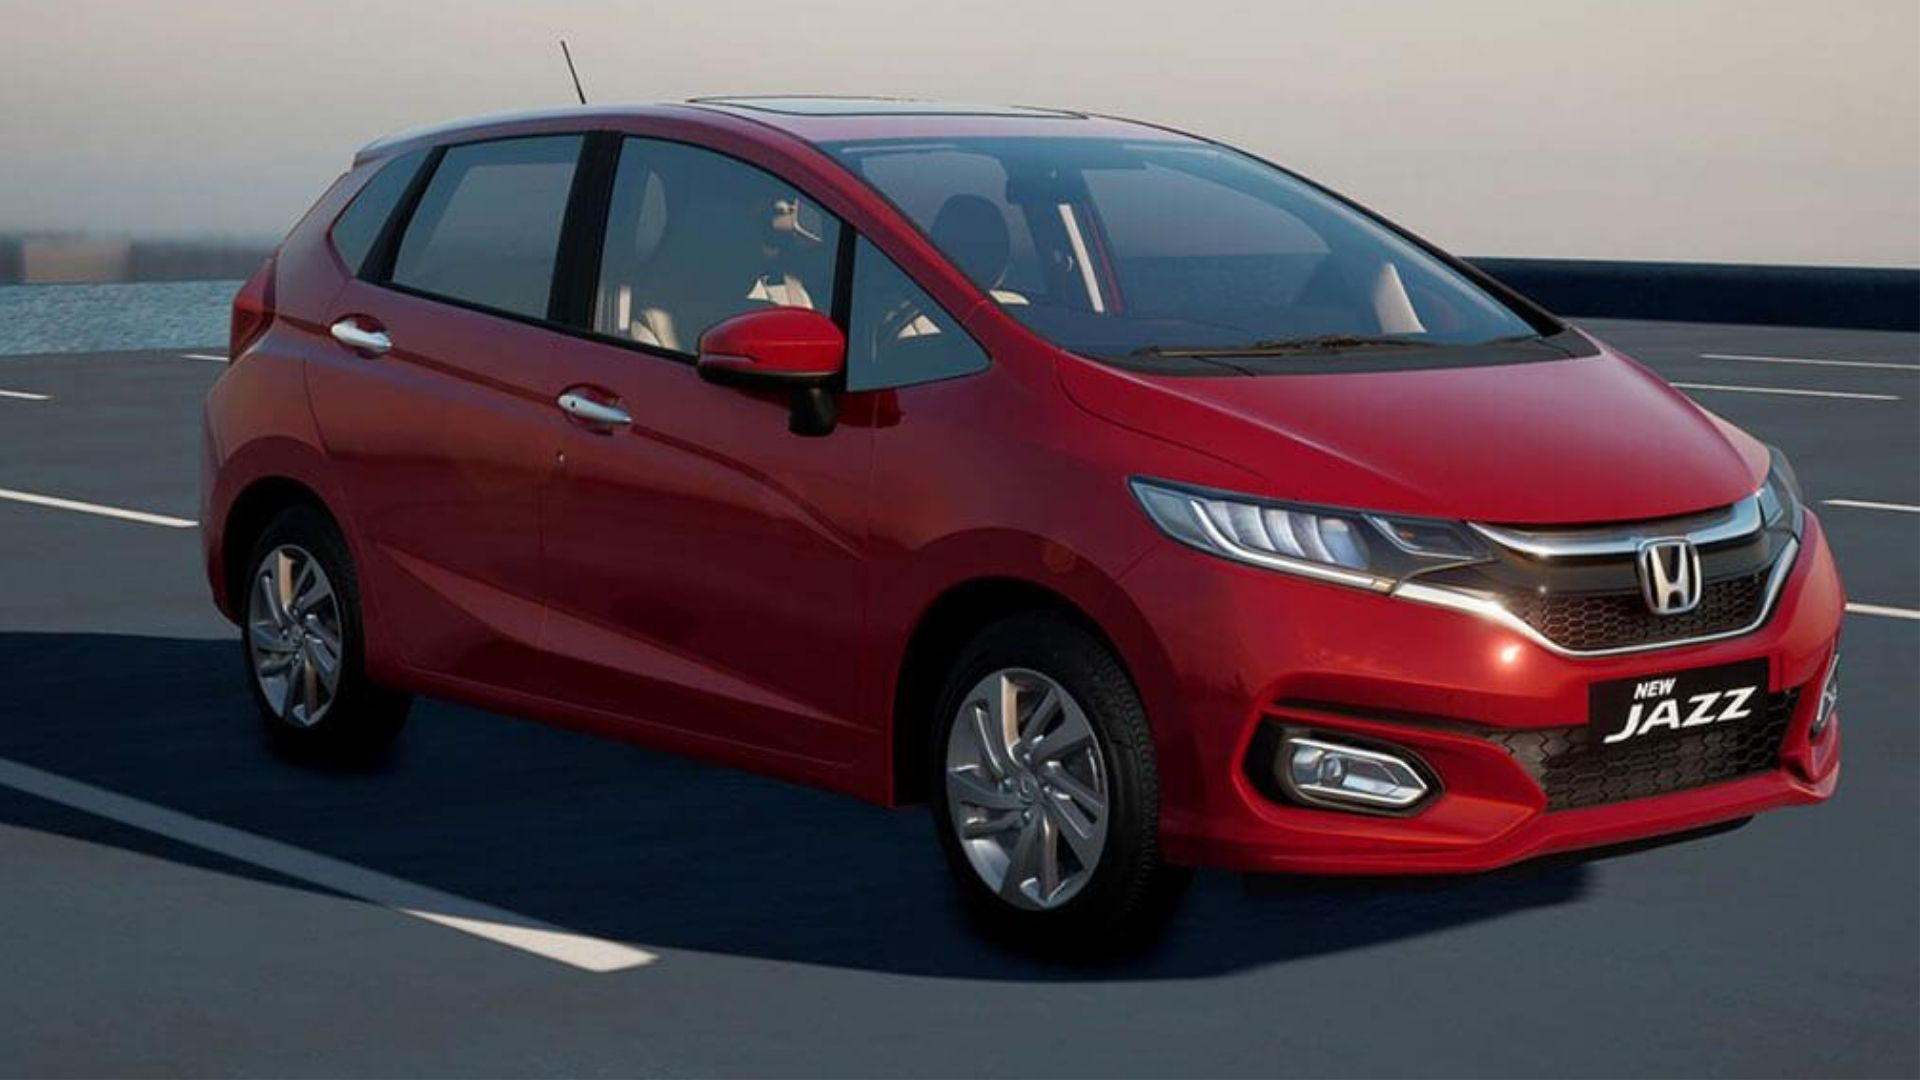 honda jazz 2020 launched @ ₹7.49 lakh in india - prices